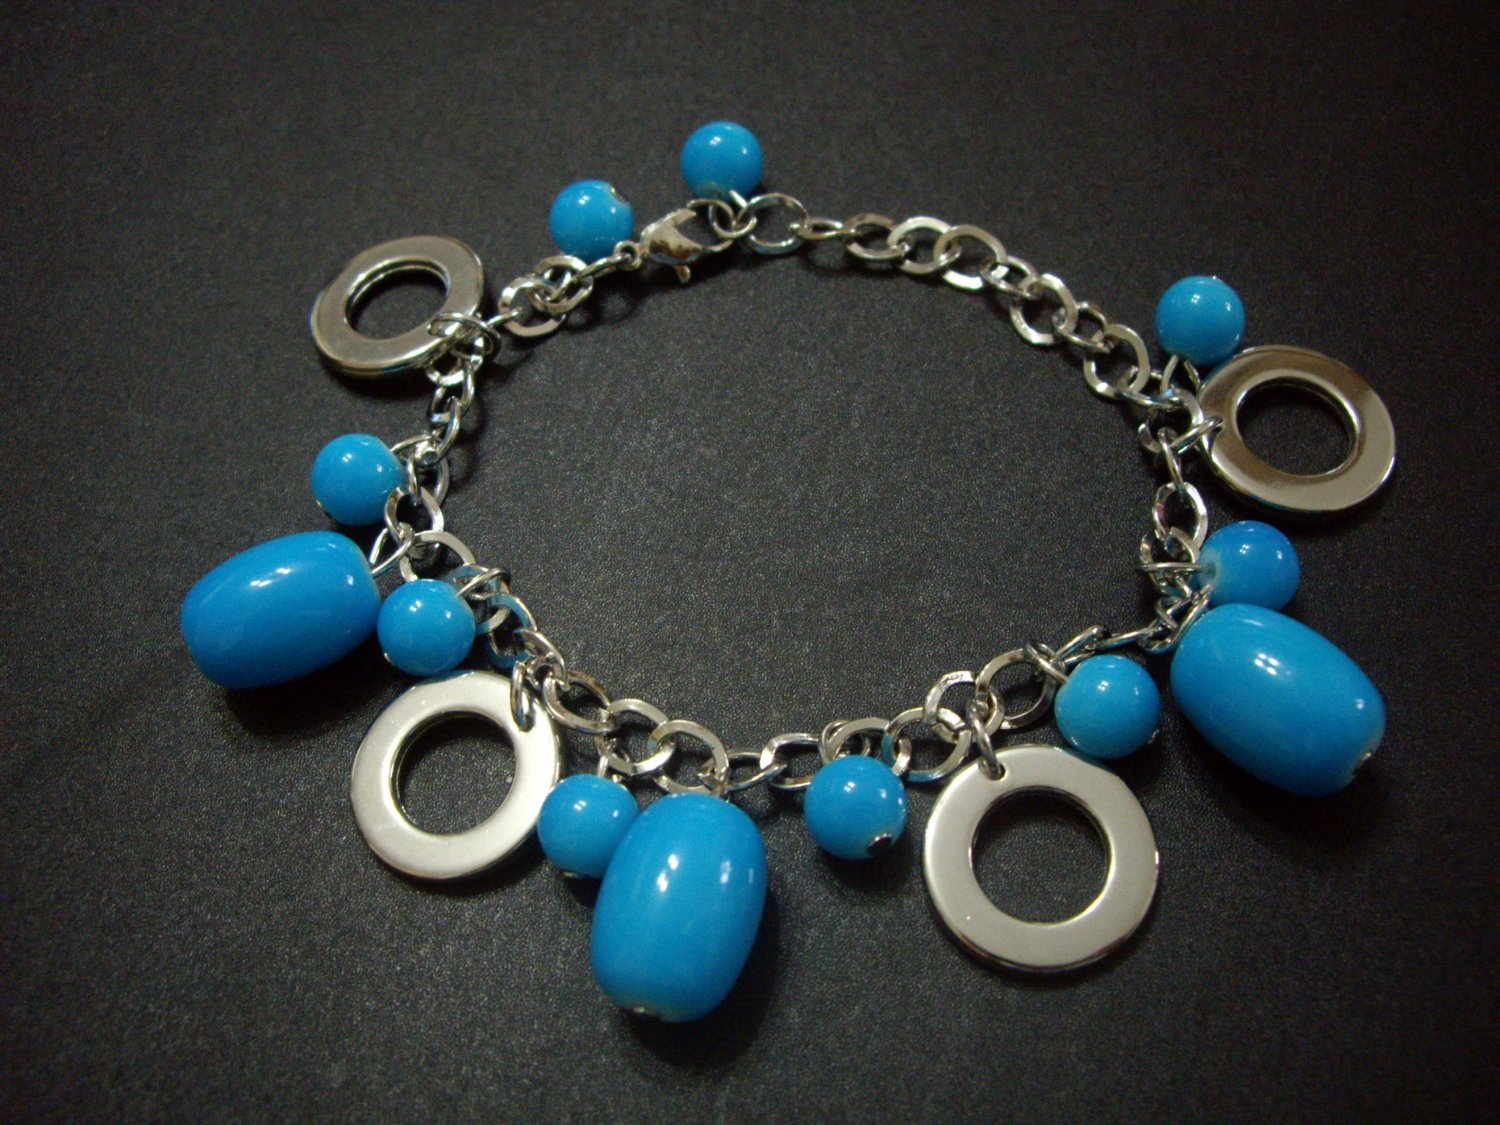 Fashionable blue beads with silver hoops bracelet